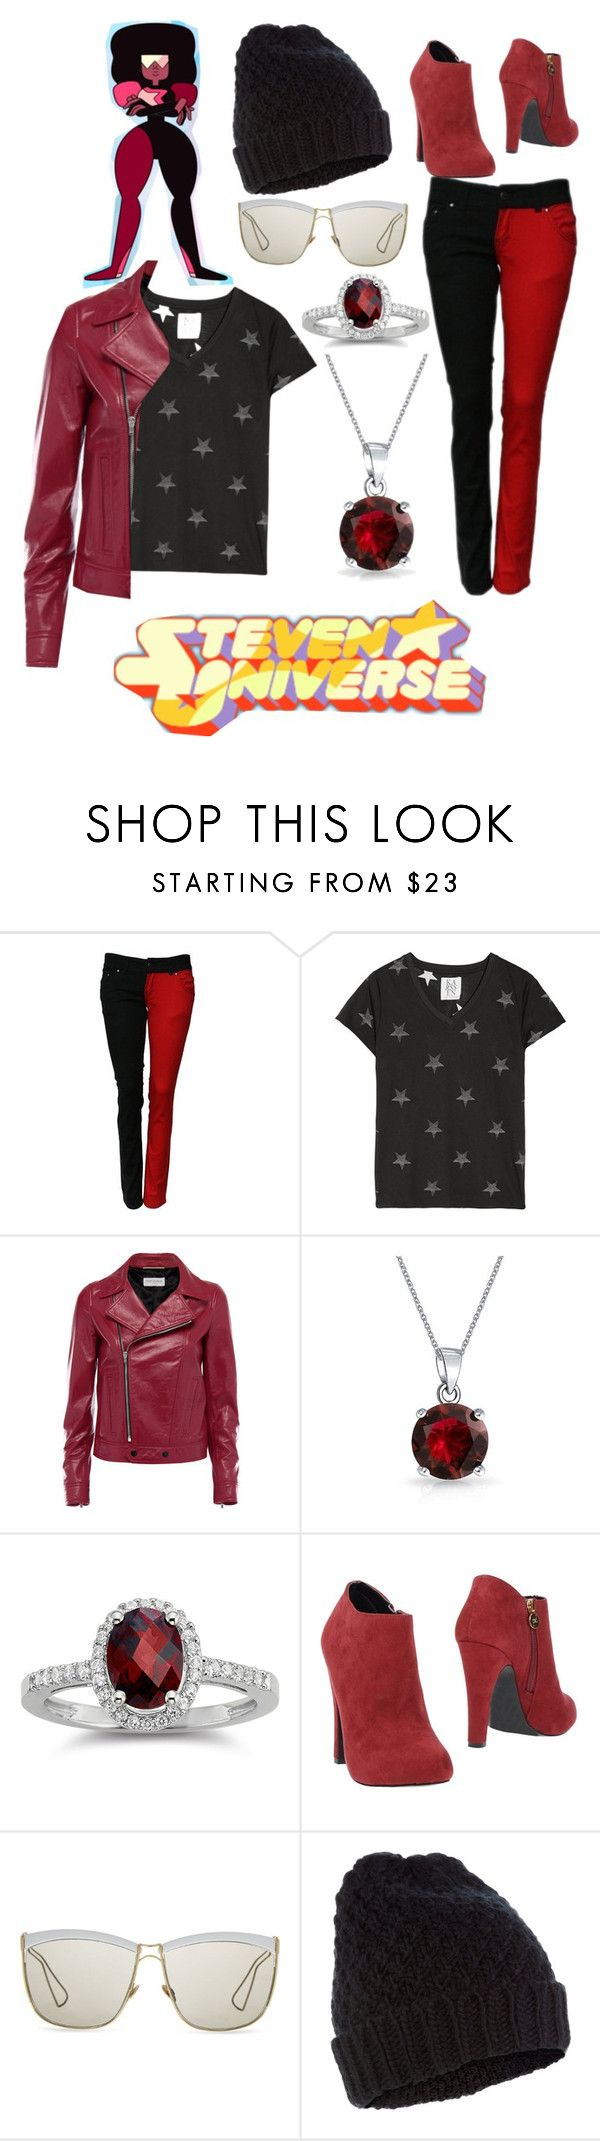 """""""Garnet from steven universe"""" by gabbygainer ❤ liked on Polyvore featuring Zoe Karssen, Yves Saint Laurent, Bling Jewelry, PrimaDonna, Christian Dior, Accessorize, women's clothing, women, female and woman"""